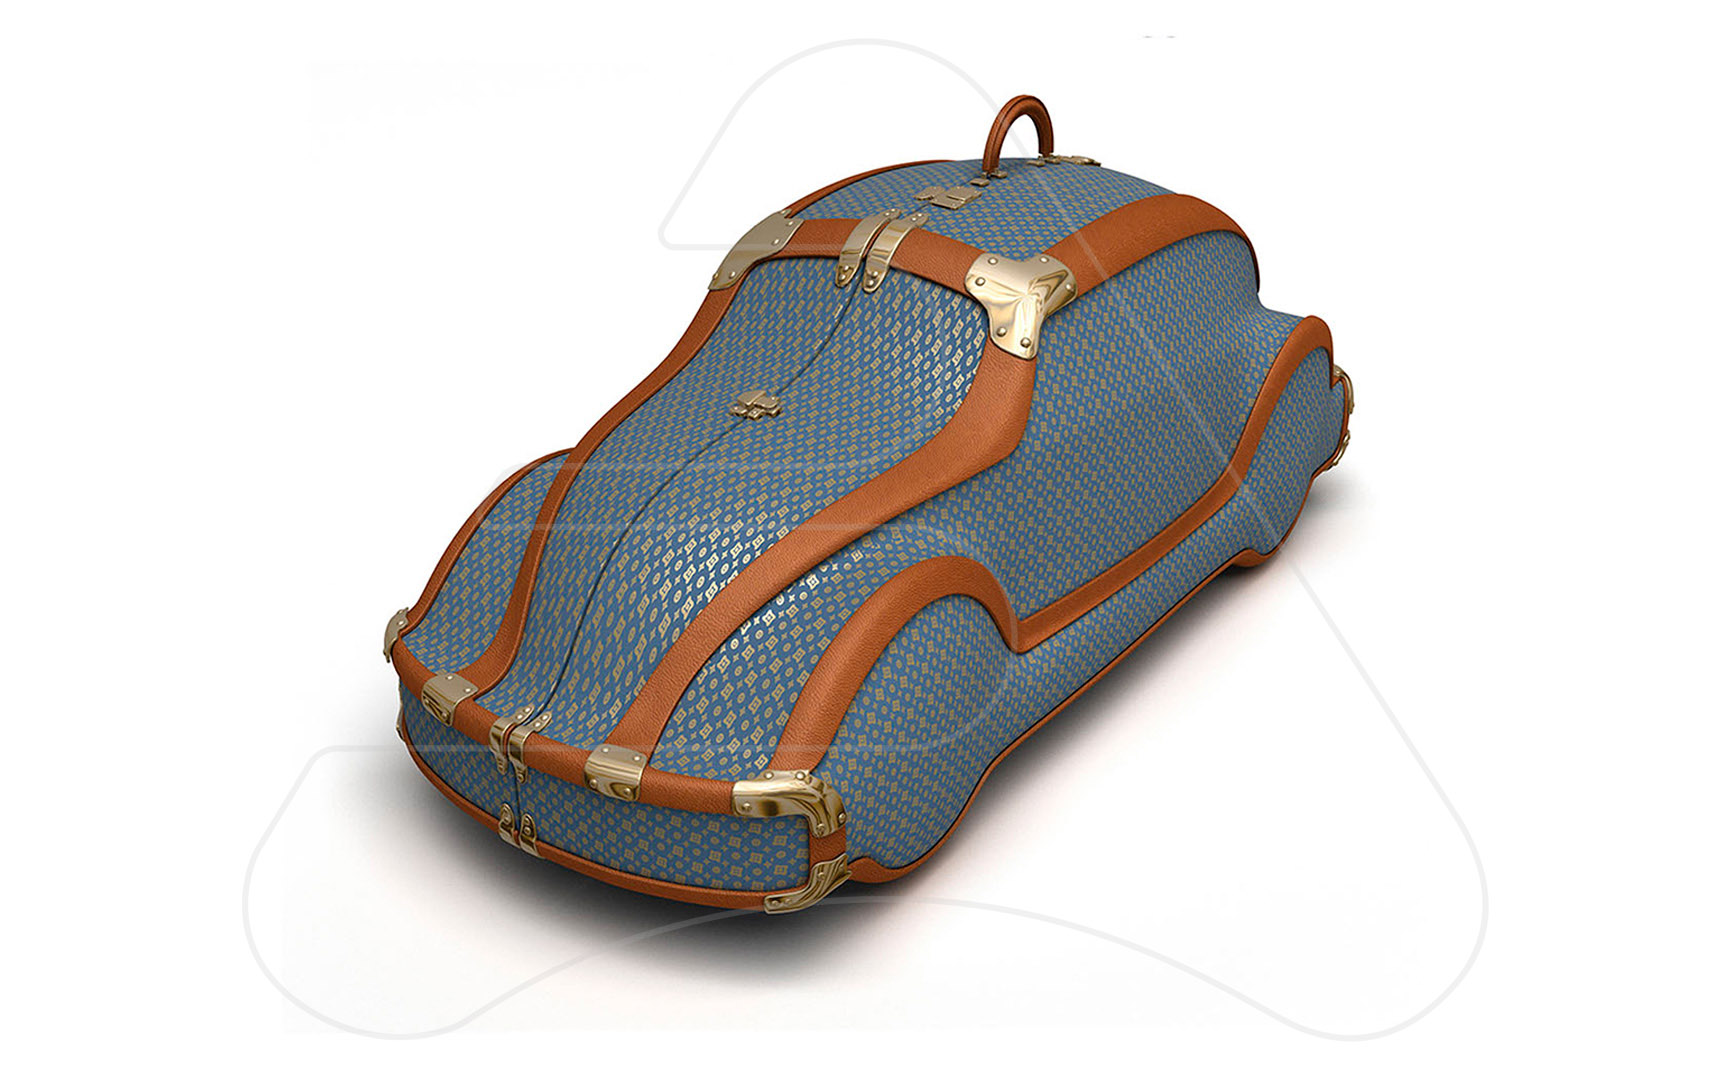 Suitcase Car / 3D modeling and illustration